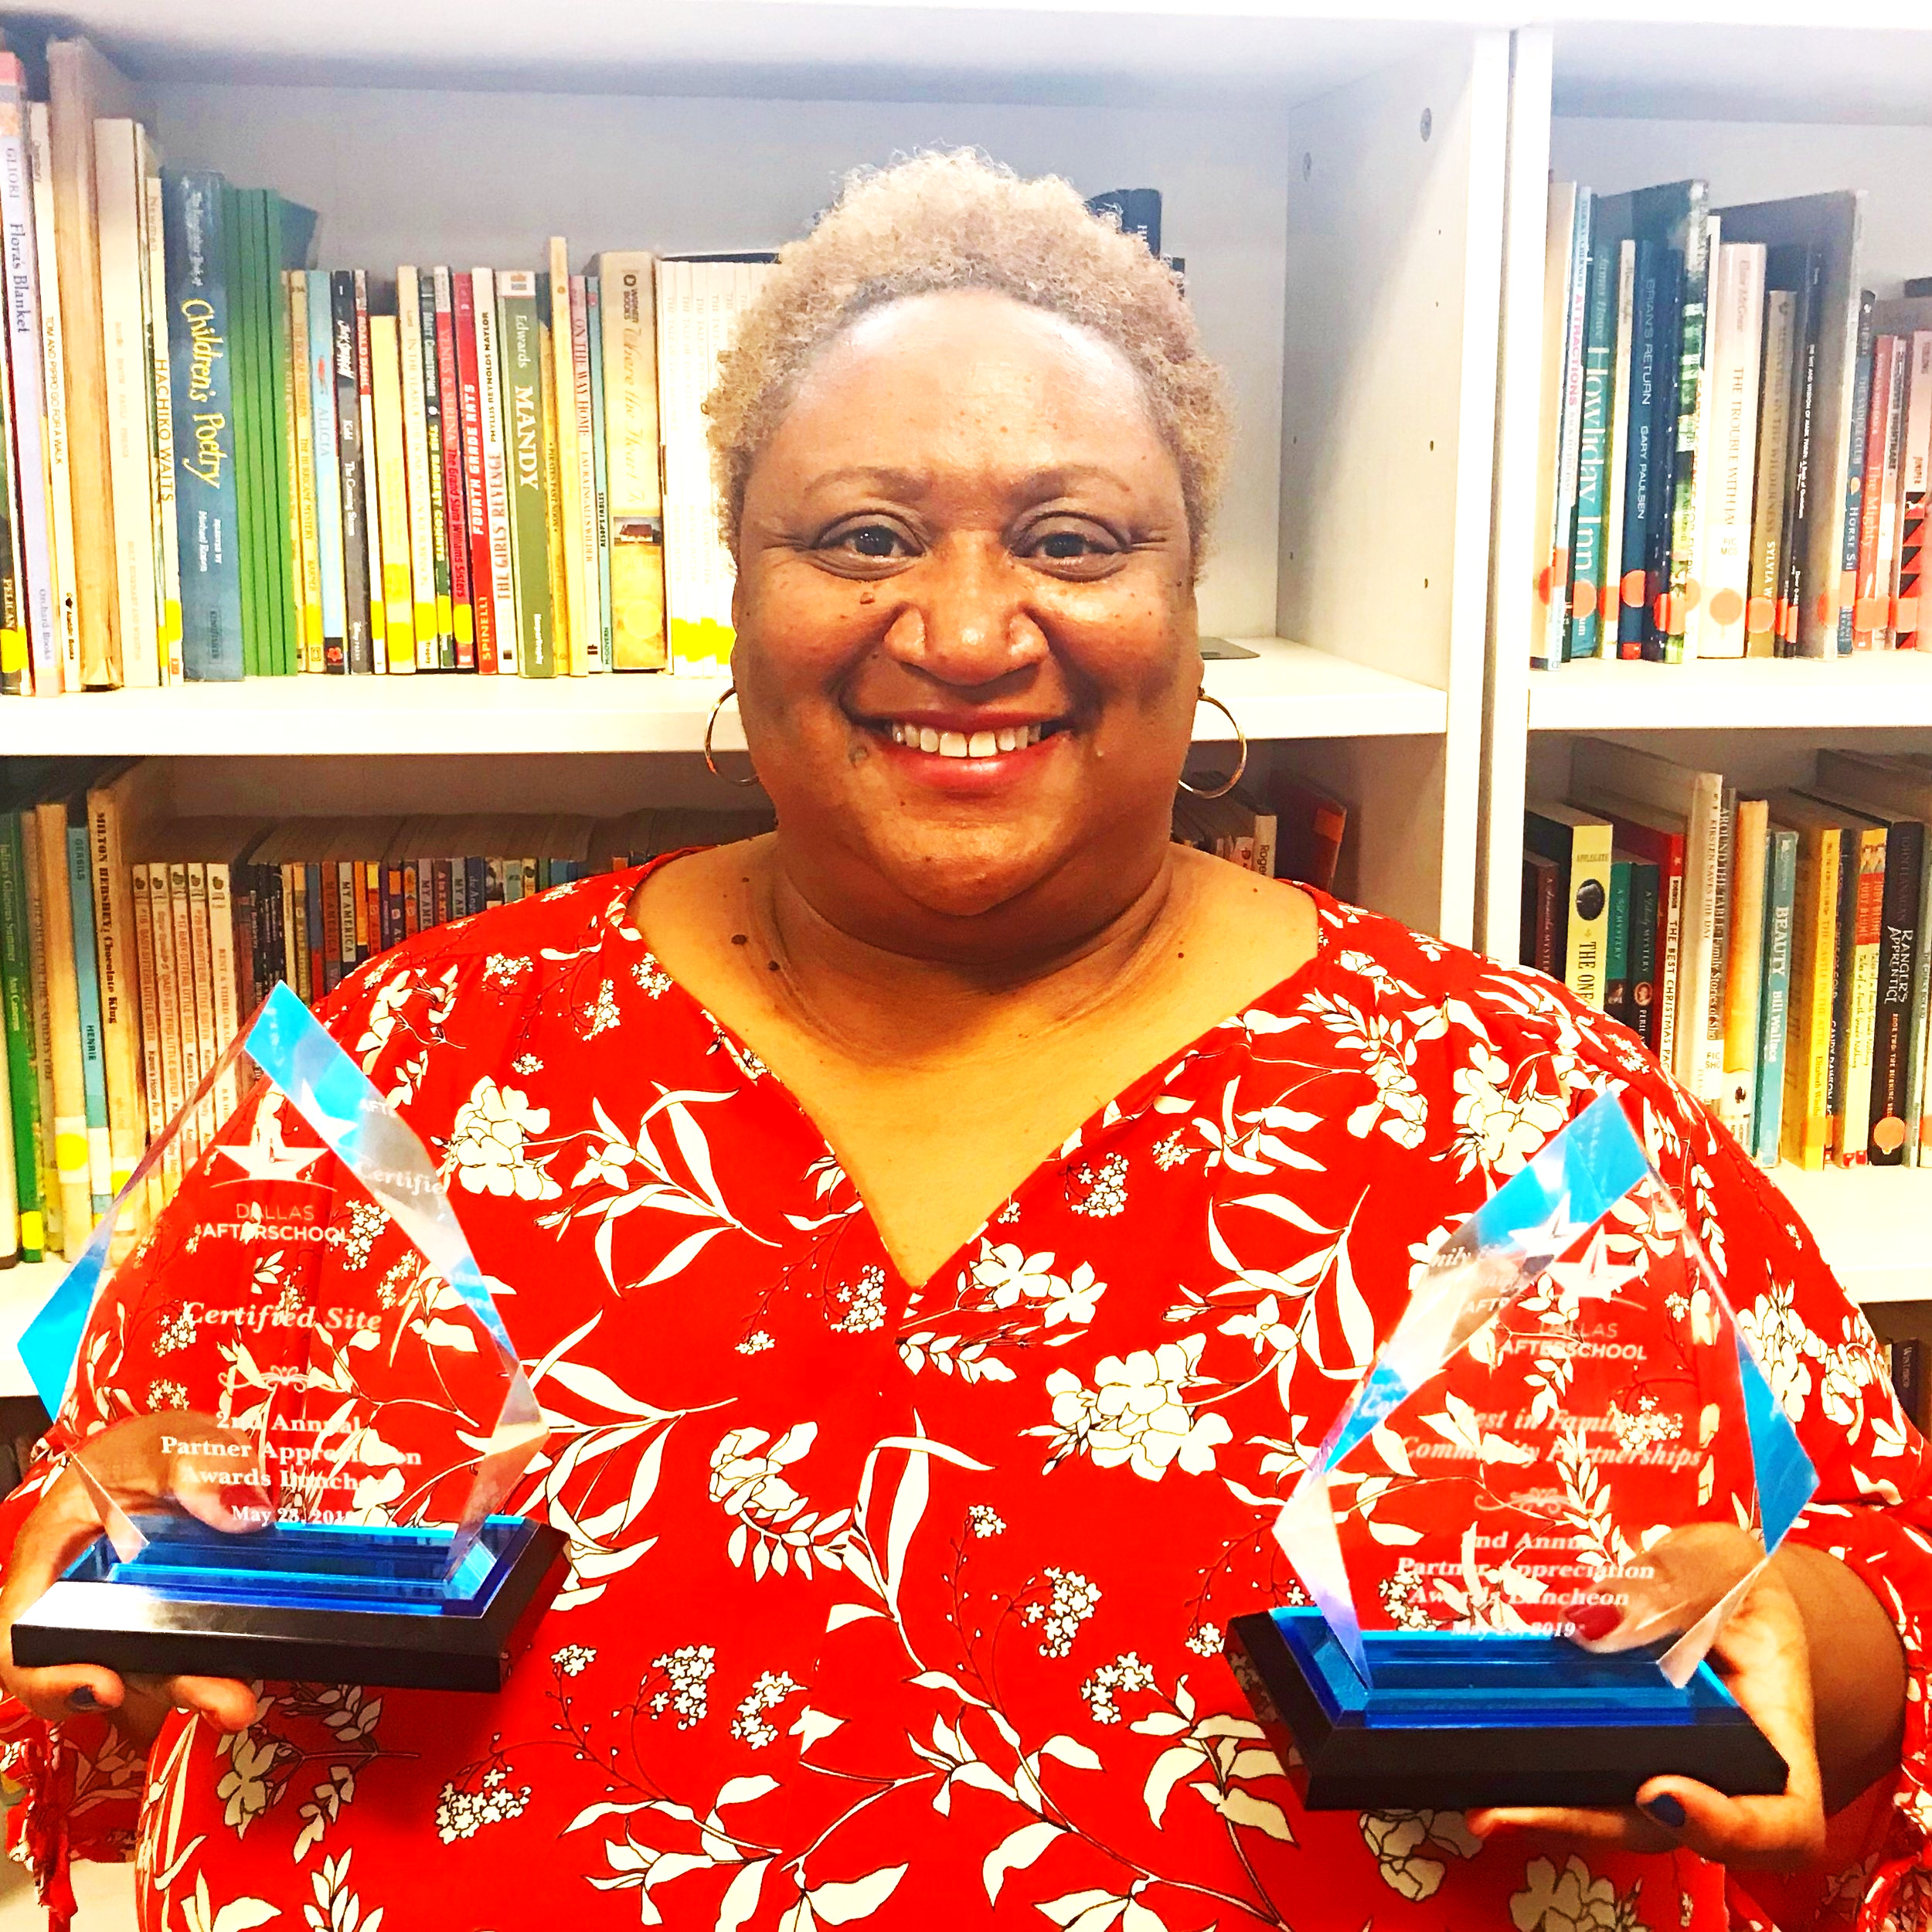 Shante McCoy-Shelley, Program Manager, with awards for Jubilee's second certified location and top Community & Family Program.